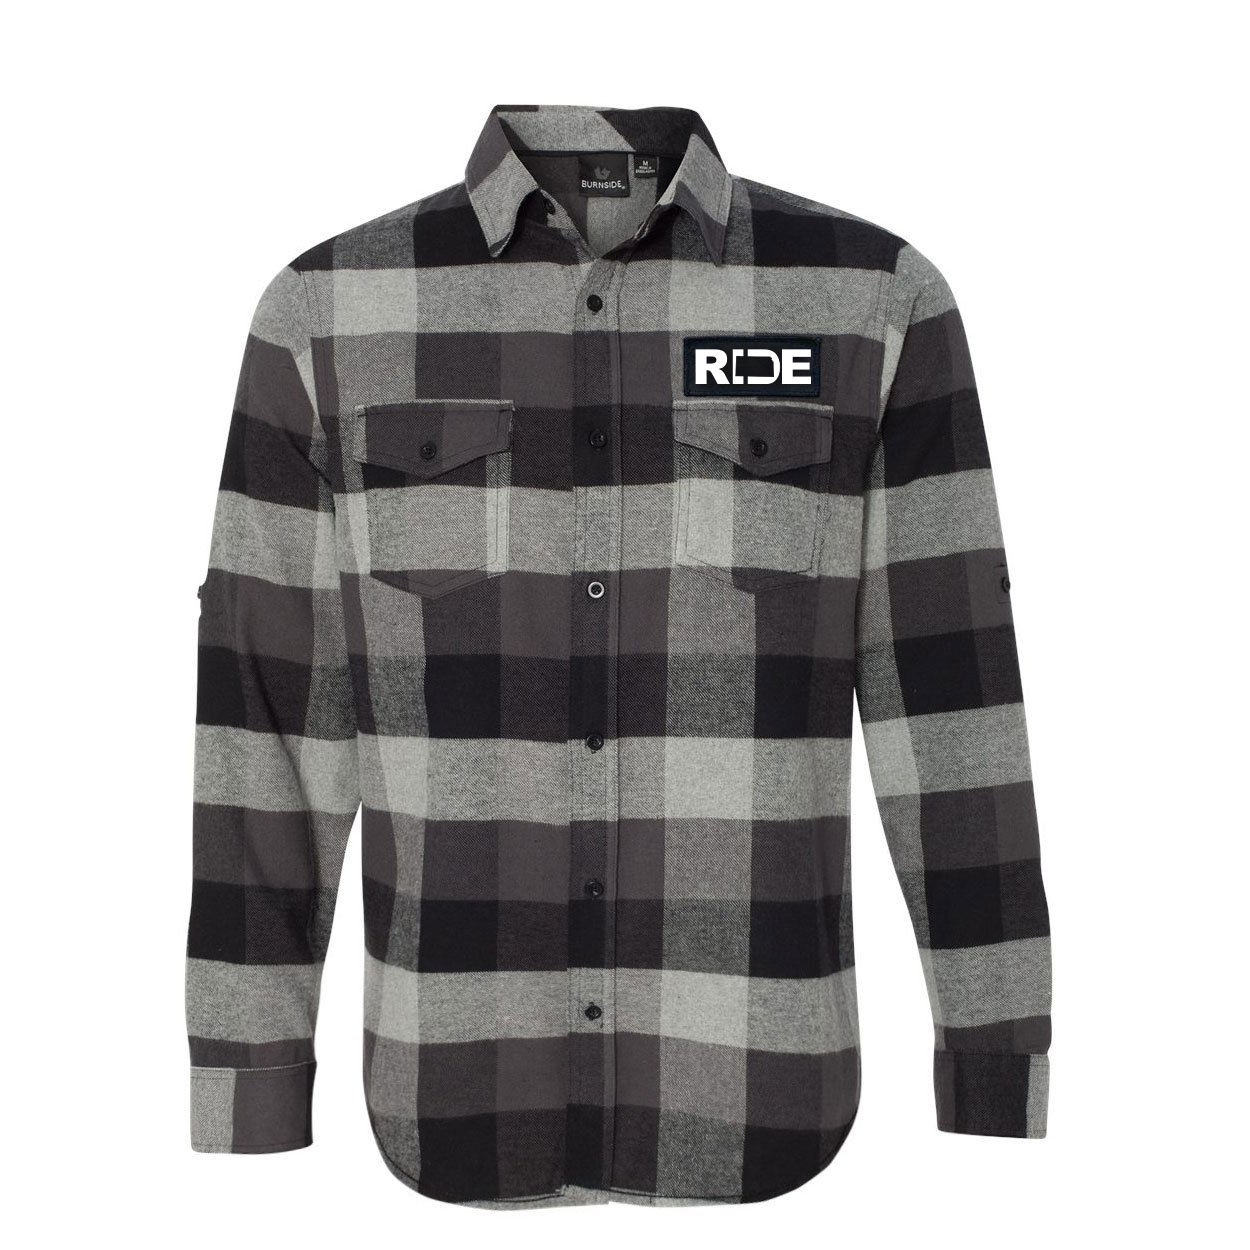 Ride Kansas Classic Unisex Long Sleeve Woven Patch Flannel Shirt Black/Gray (White Logo)